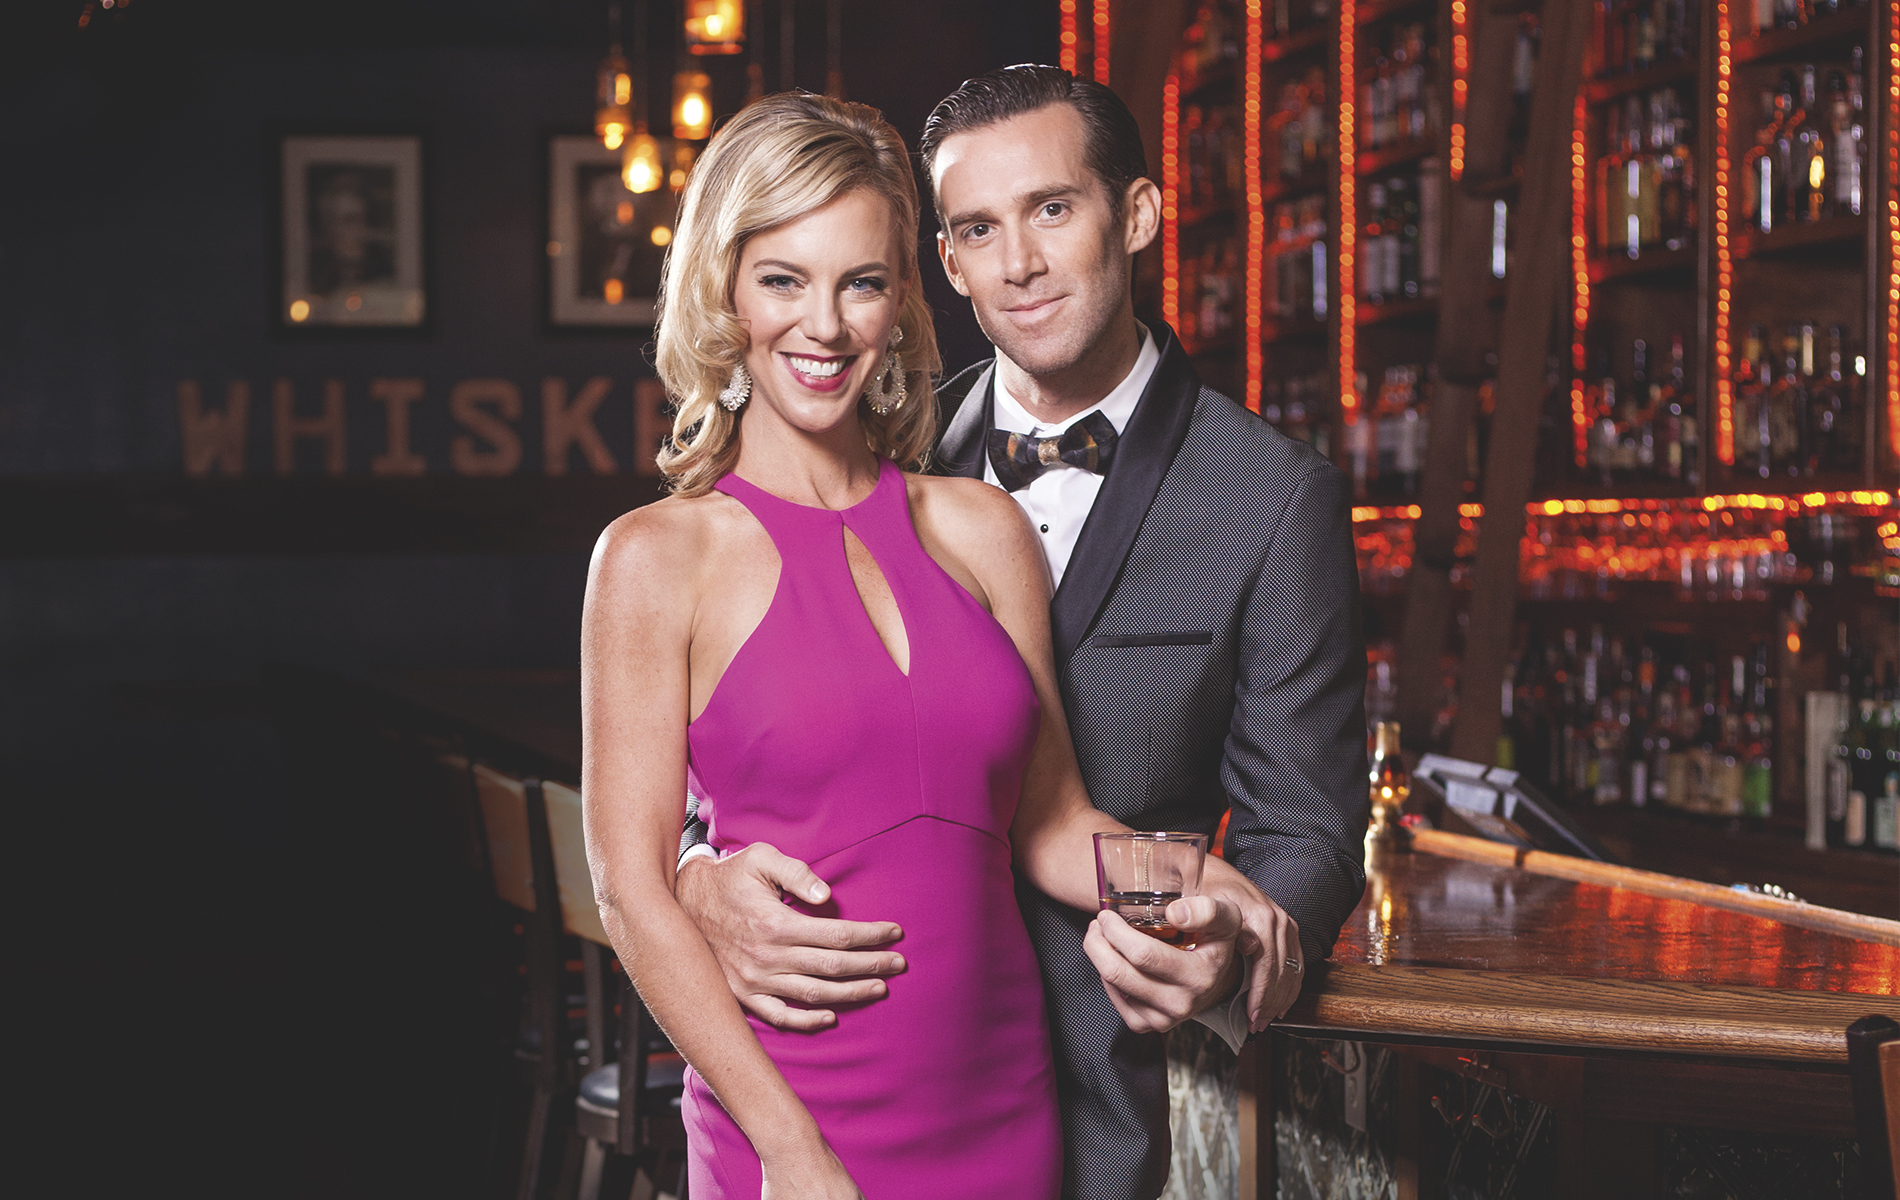 Peat & Pearls celebrity guests Brooke Parkhurst and James Briscione—TV personalities, culinary instructors, and authors of Just Married and Cooking, The Great Cook, and The Flavor Matrix—at Old Hickory Whiskey Bar in Pensacola, Florida